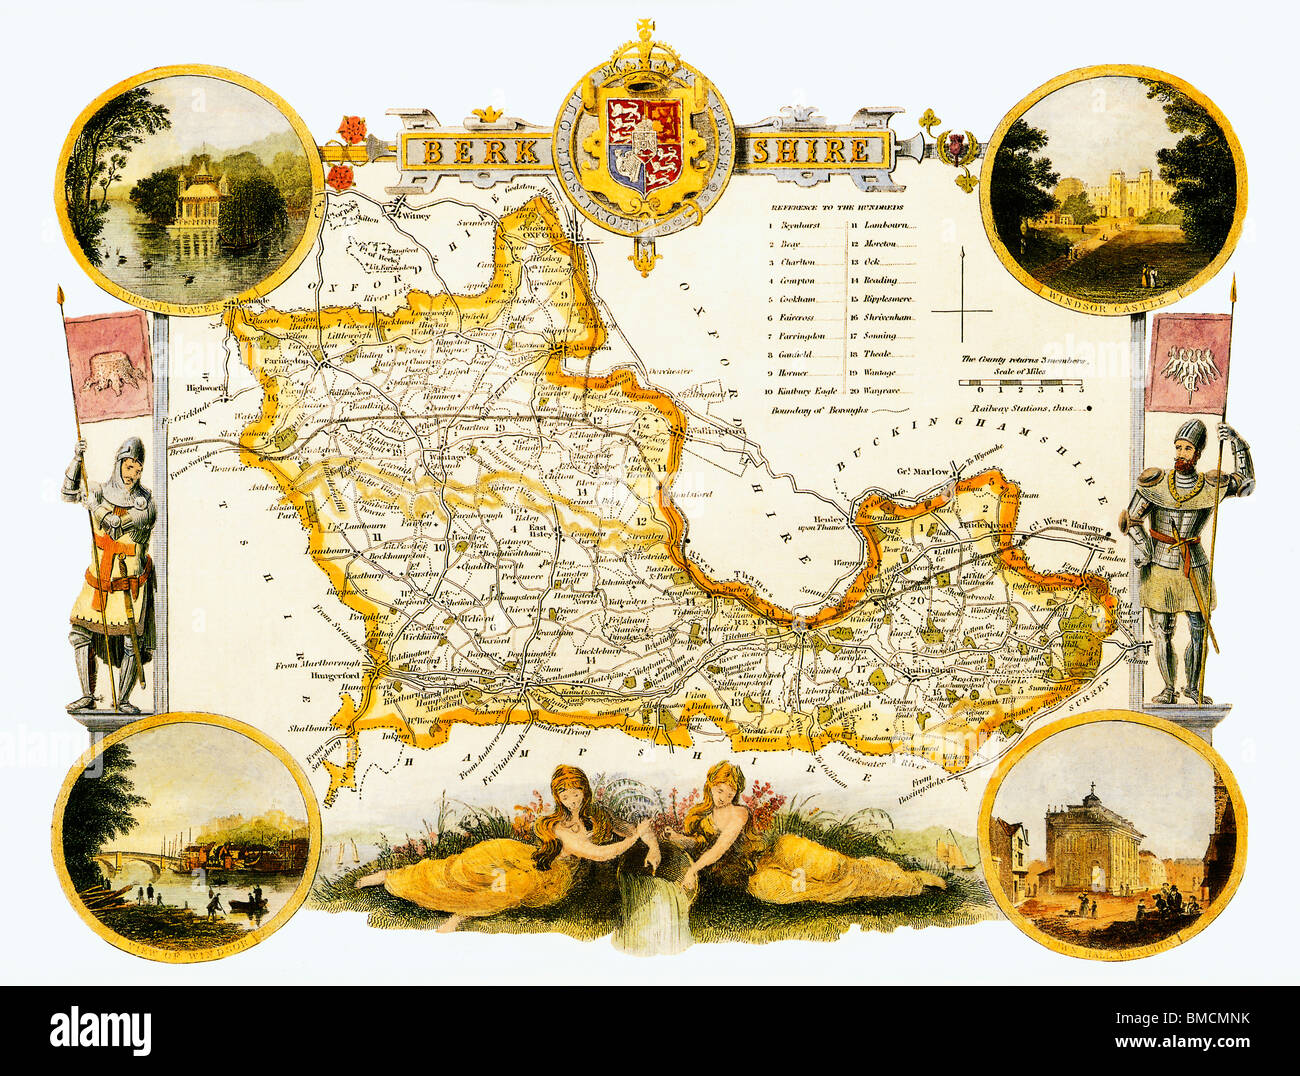 Berkshire, Thomas Moule Map, from the late 1840s the illustrated map of the Royal county of England - Stock Image